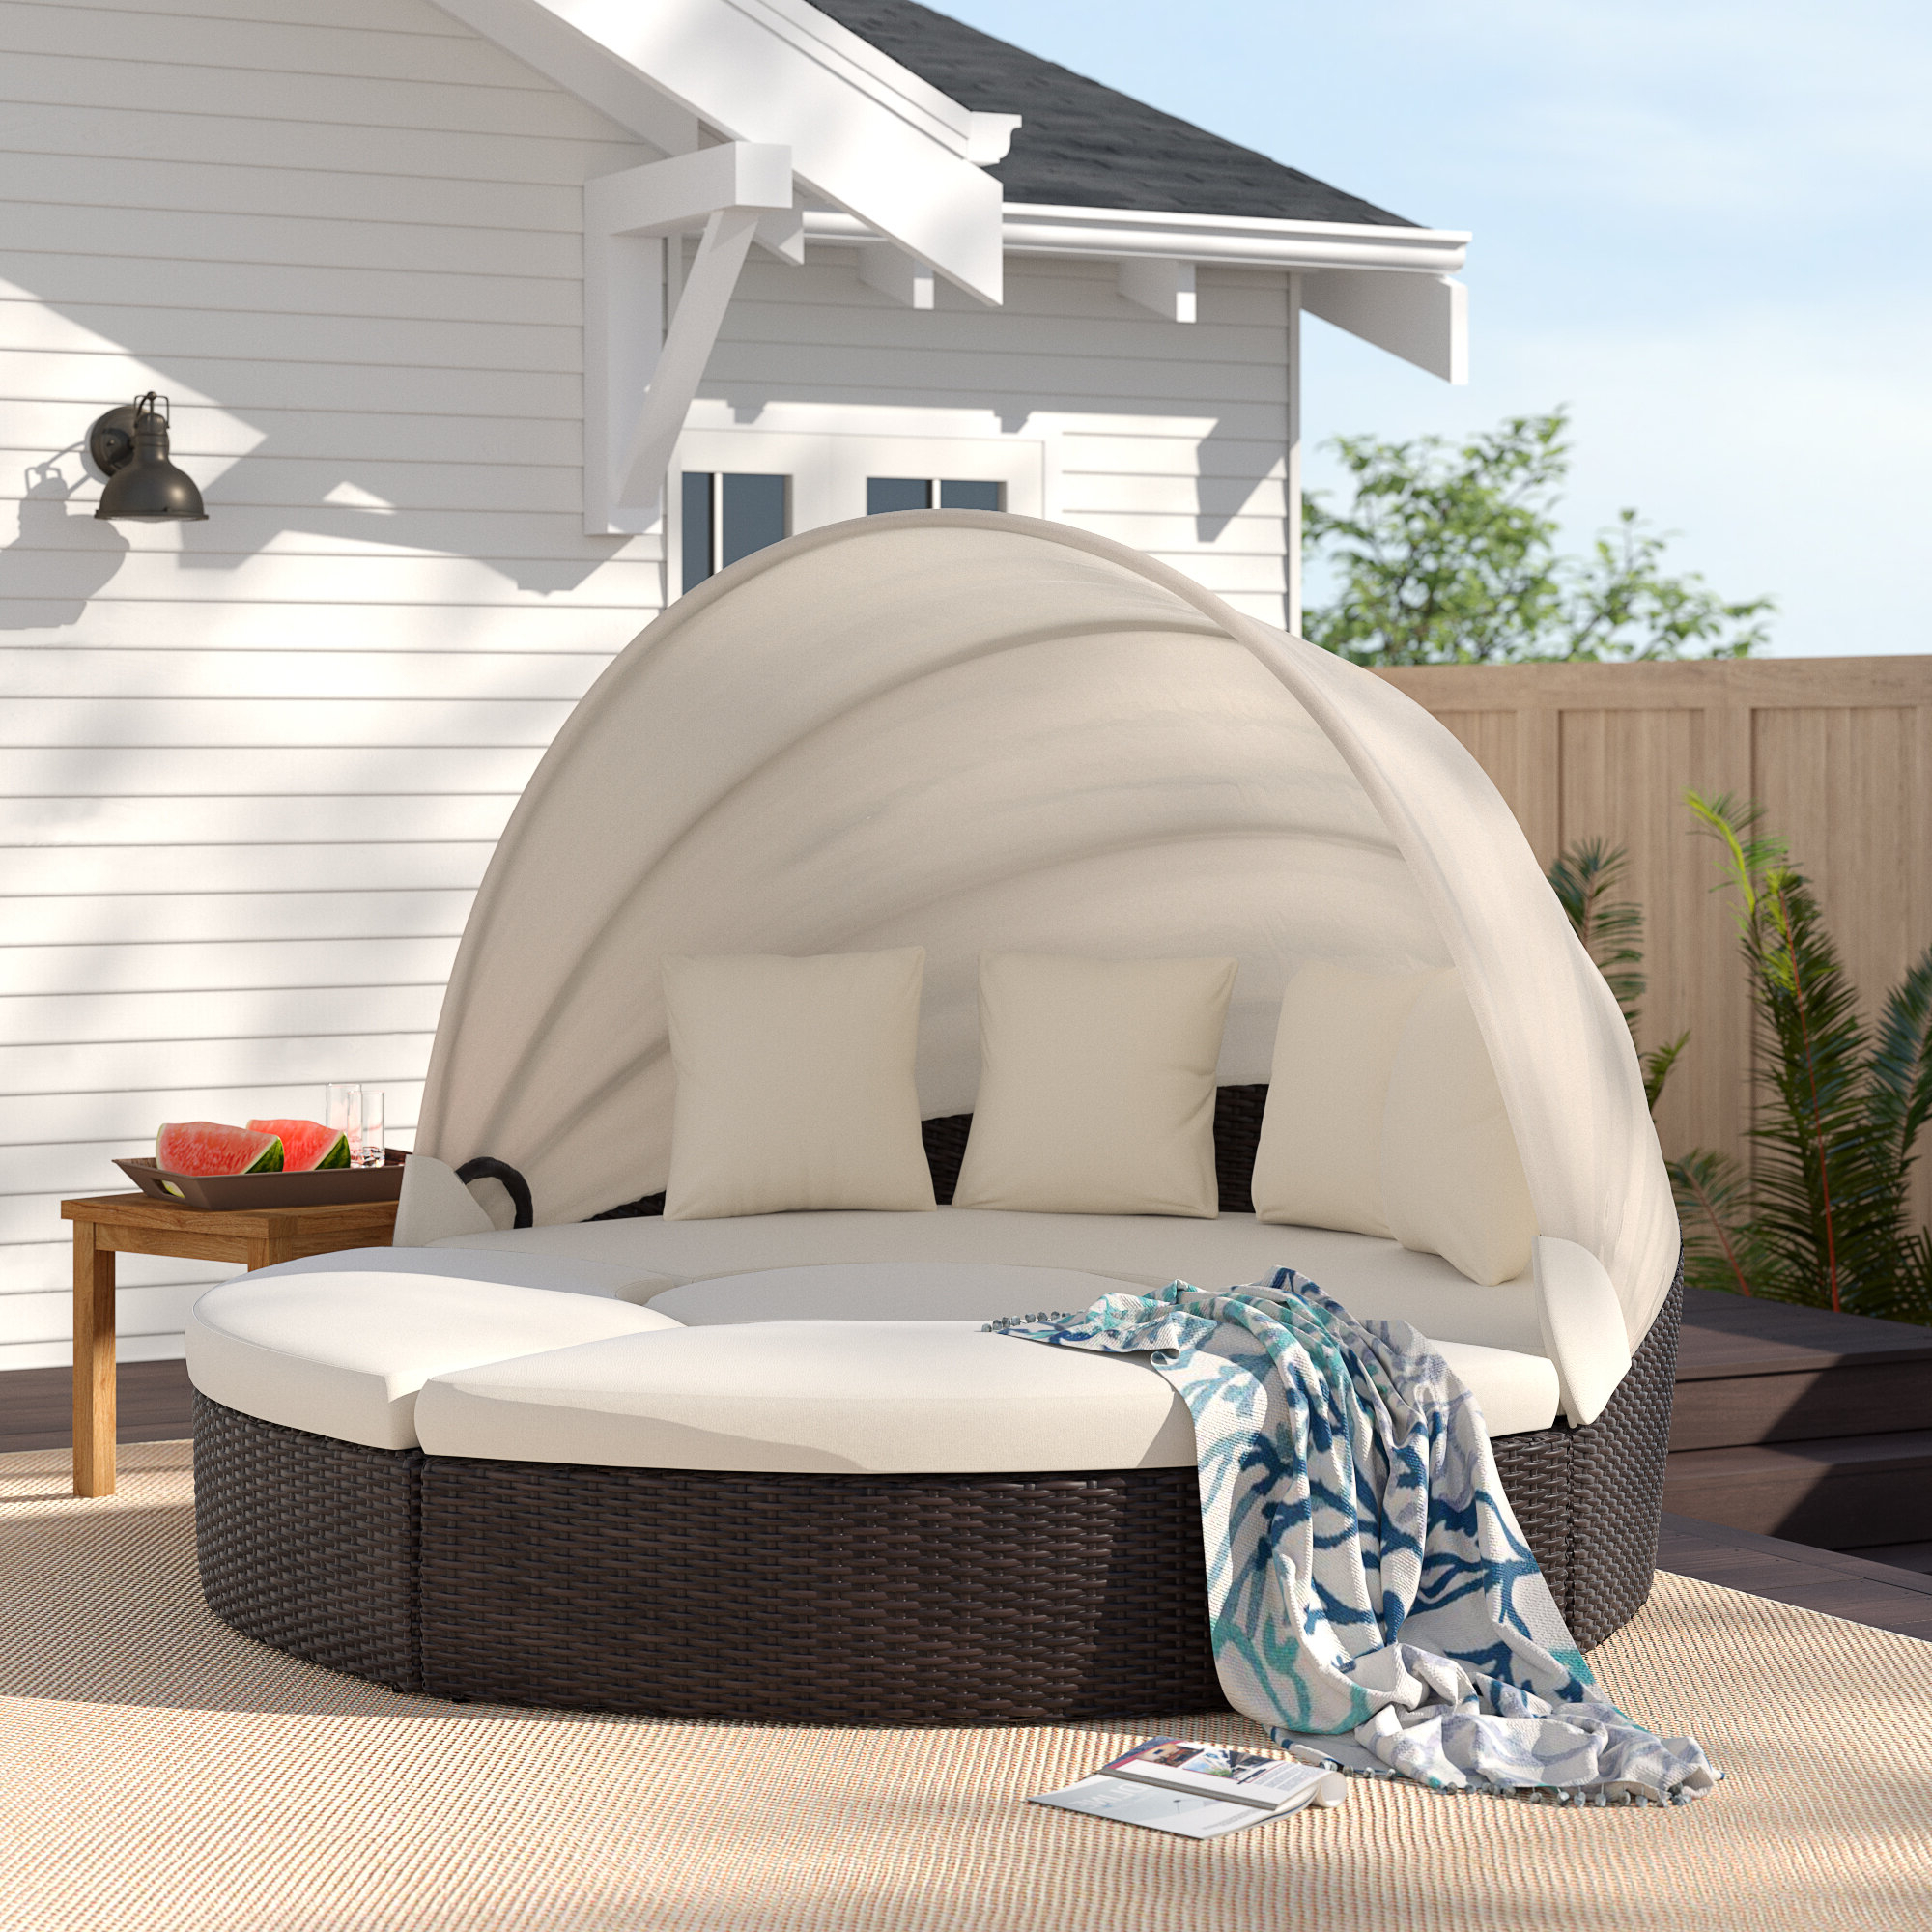 Most Popular Carrasco Patio Daybeds With Cushions In Antigua Patio Daybed With Cushions (View 15 of 20)